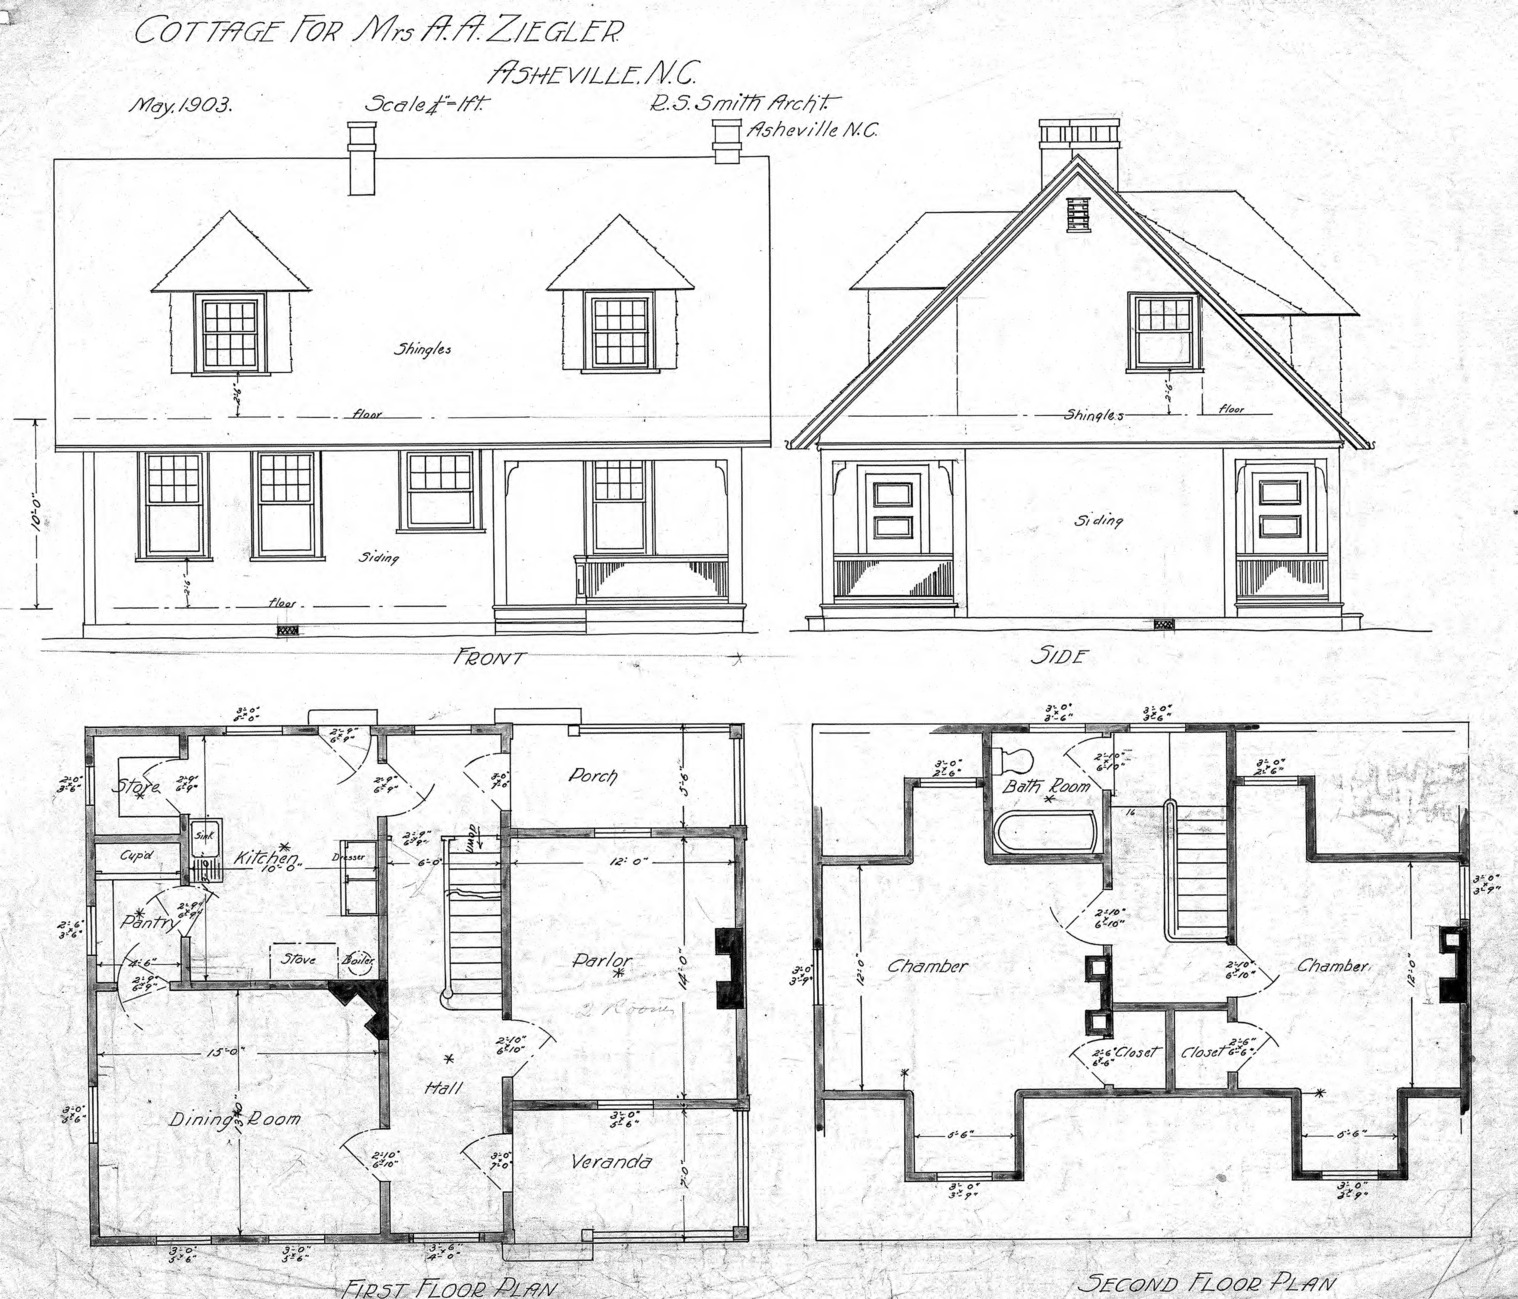 cottage for mrs ziegler hillside street front side log home floor plans log cabin kits appalachian log